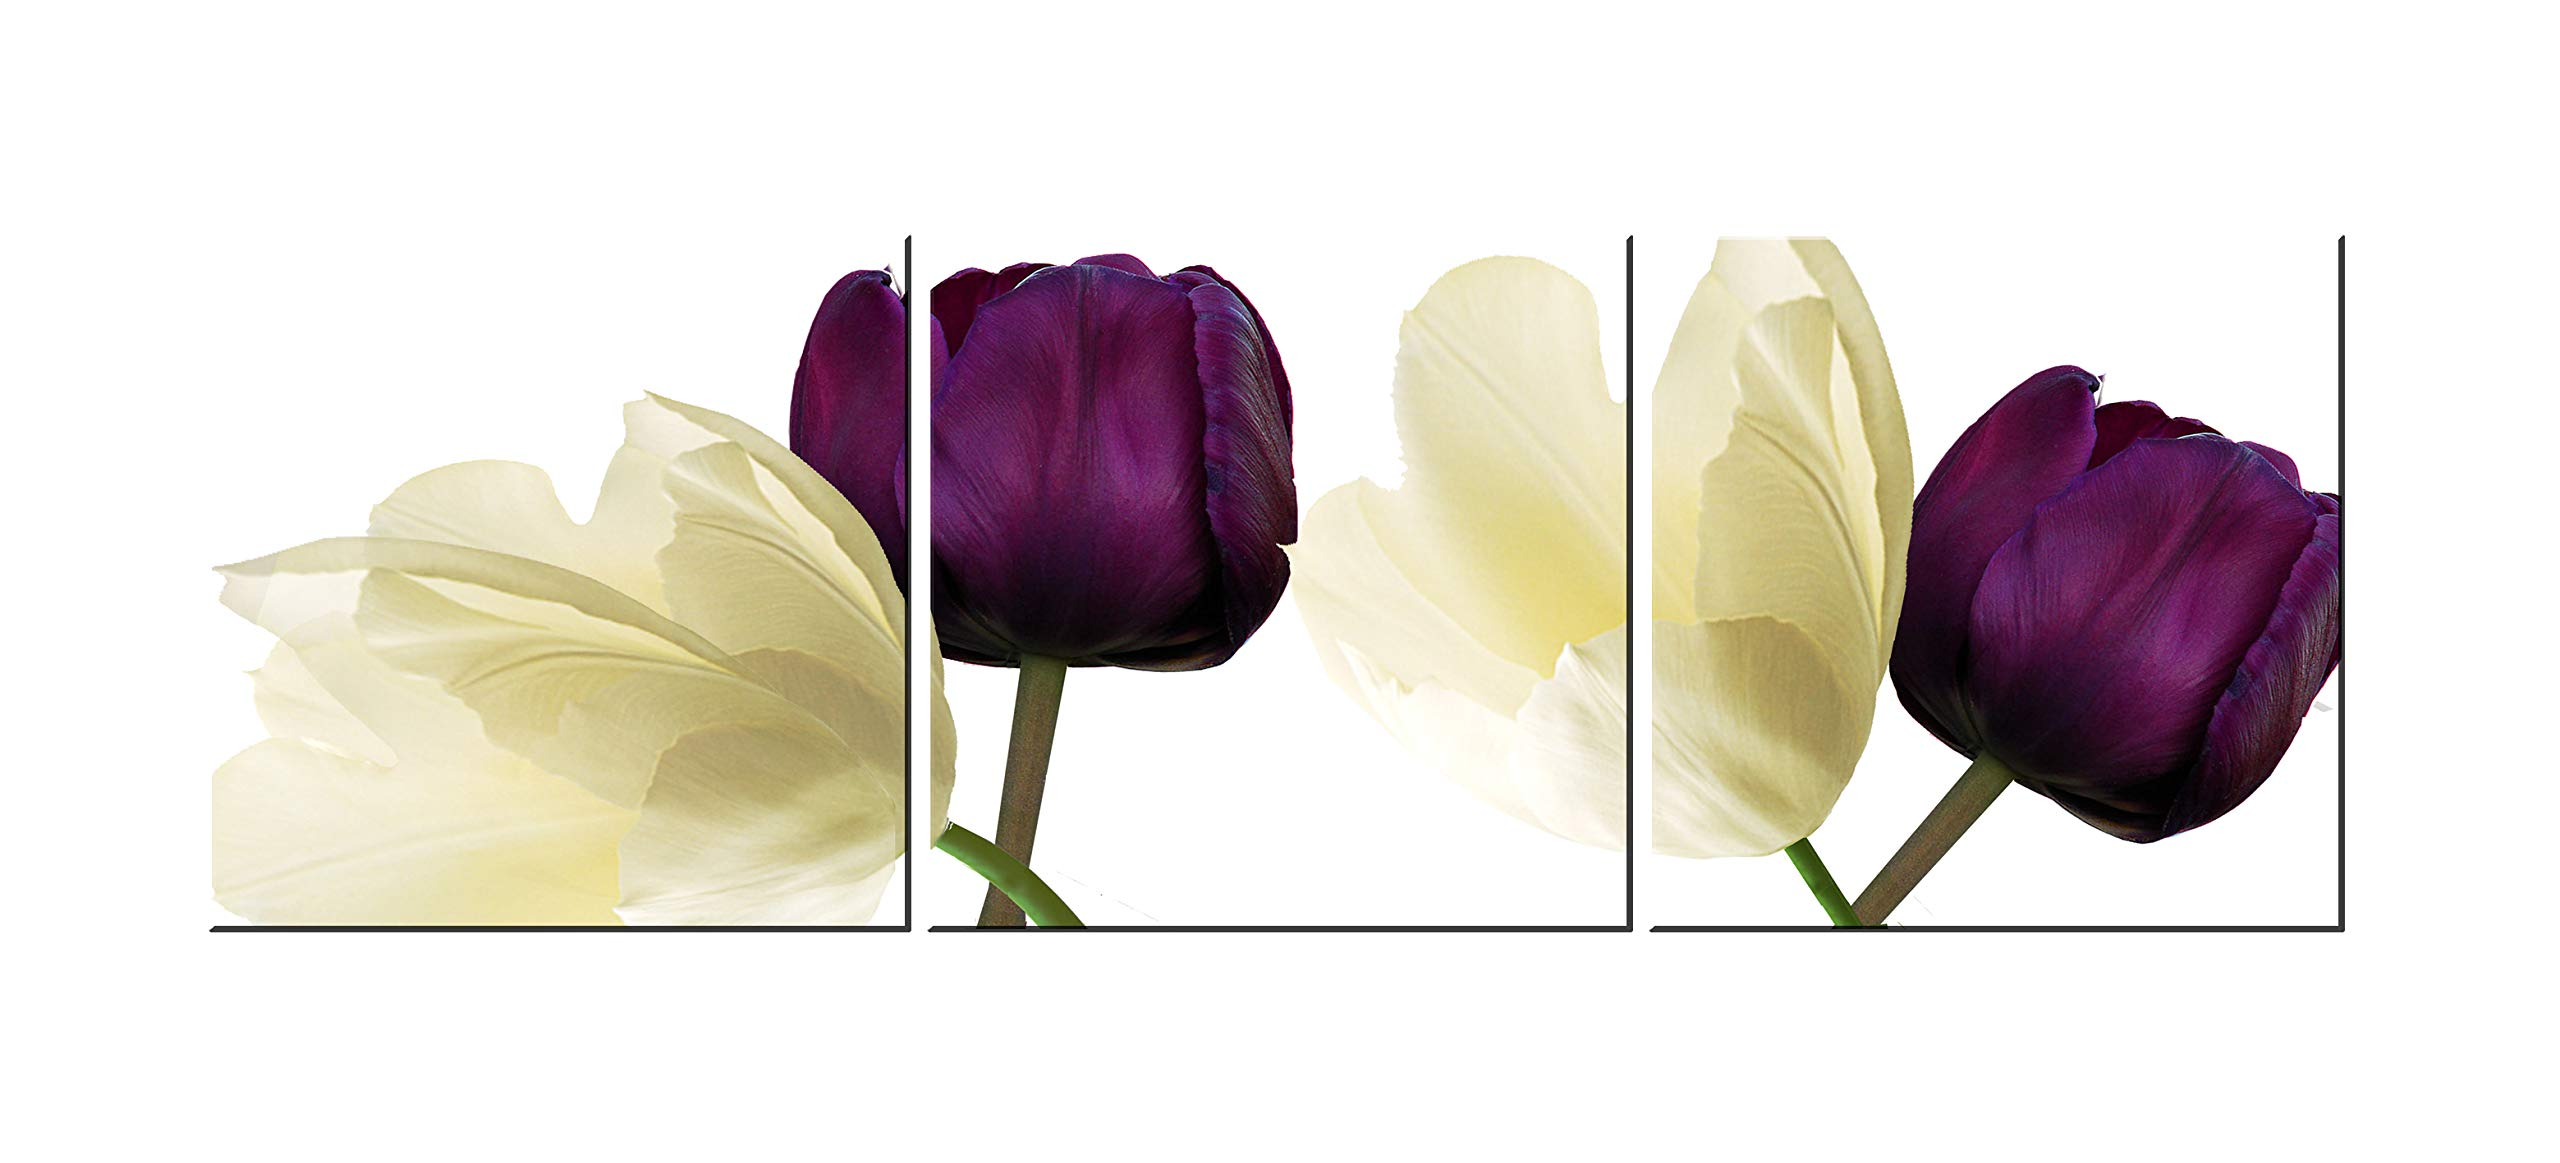 HERONEAR 3 Panels Purple Yellow Flower Wall Art Picture on Canvas Painting with Stretched Over Wood Frames Ready to Hang for Bedroom (16x16inx3)